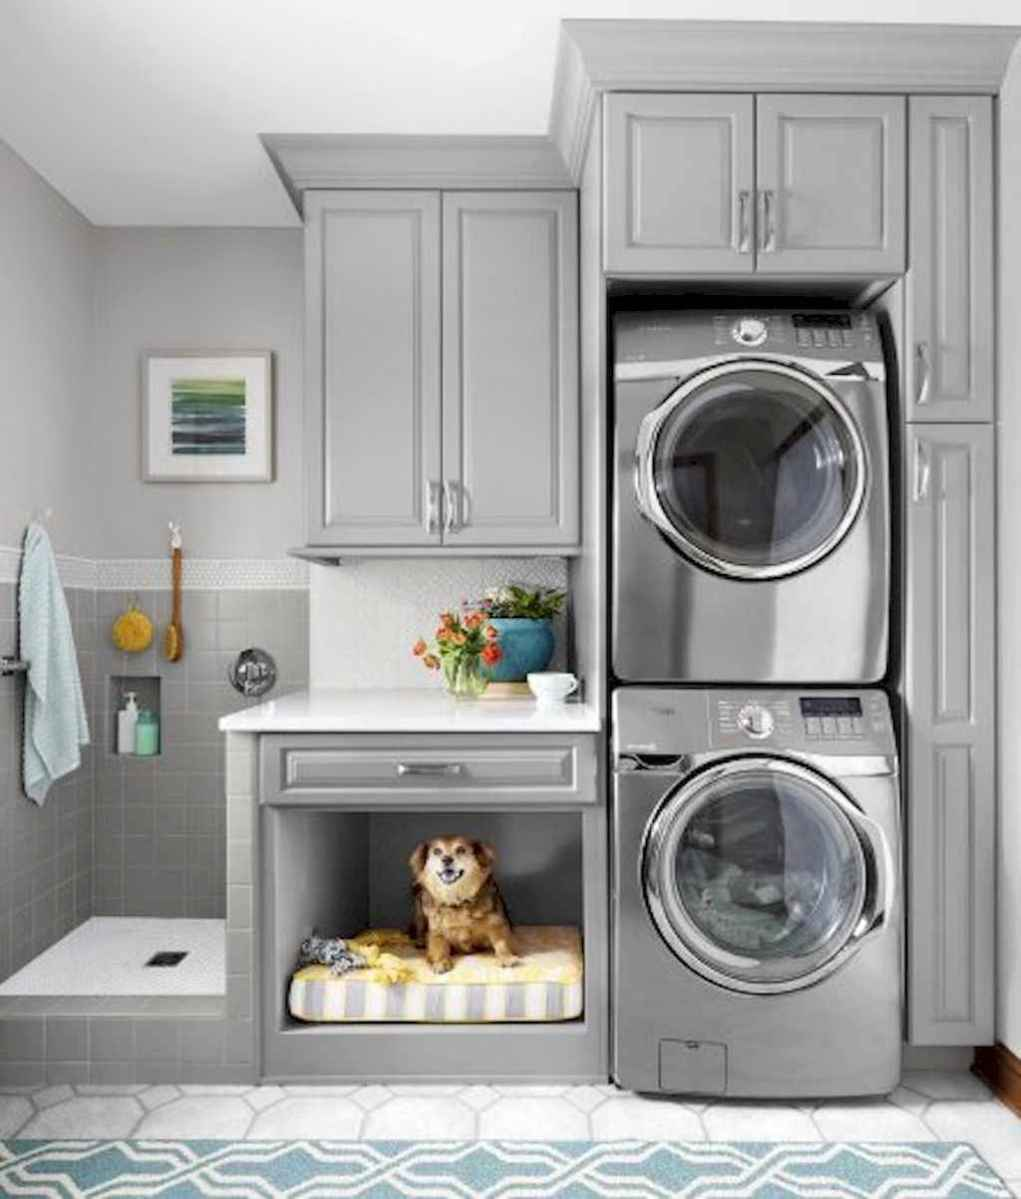 41 functional small laundry room design ideas